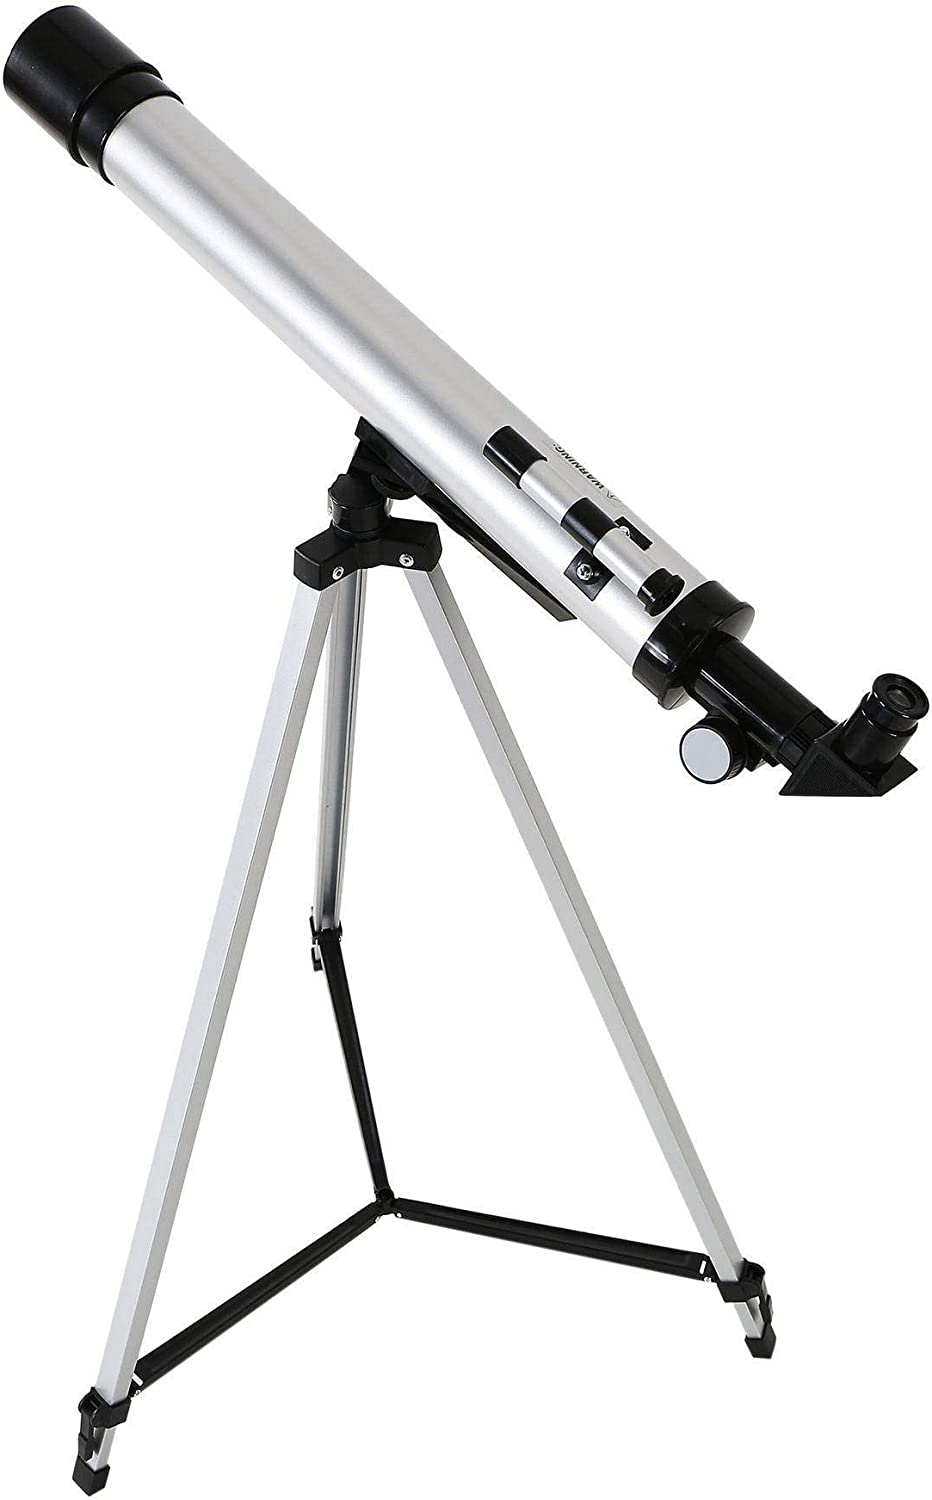 Travel Scope Kids Beginners Telescope Astronomical 50600 Refractor Telescope with Eyepiece Finder Scope Erect Image Prism Portable Astronomical Telescope-50600